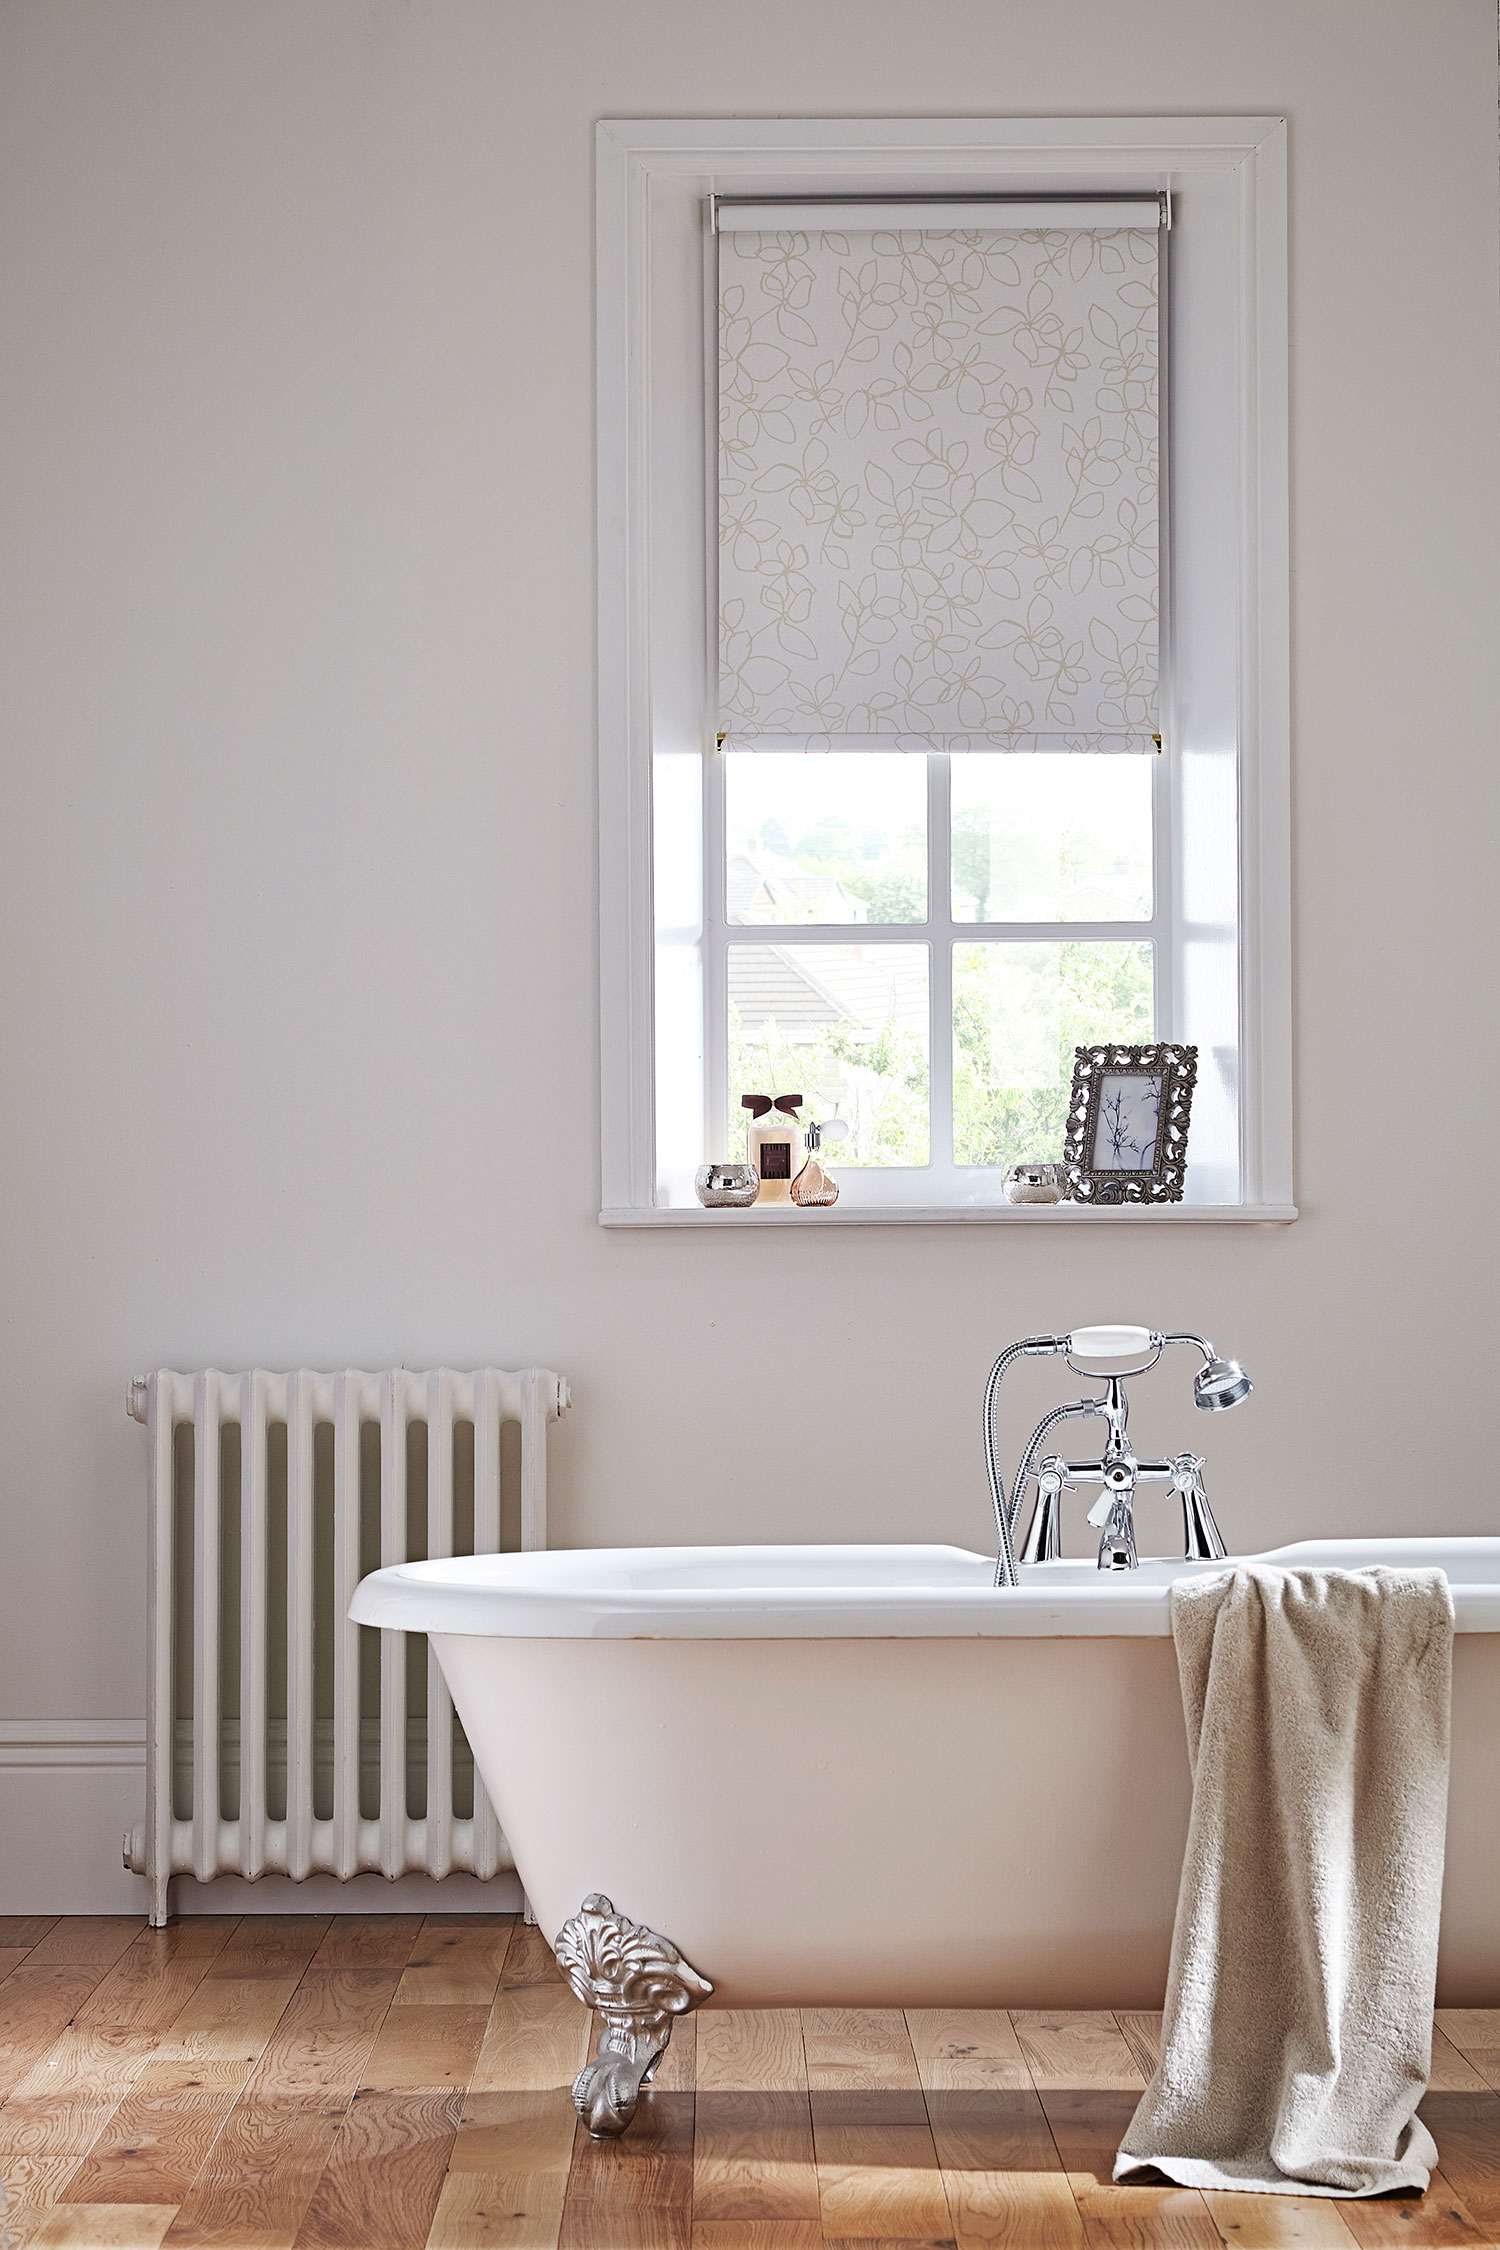 Tricks And Tips To Make A Small Bathroom Seem Larger